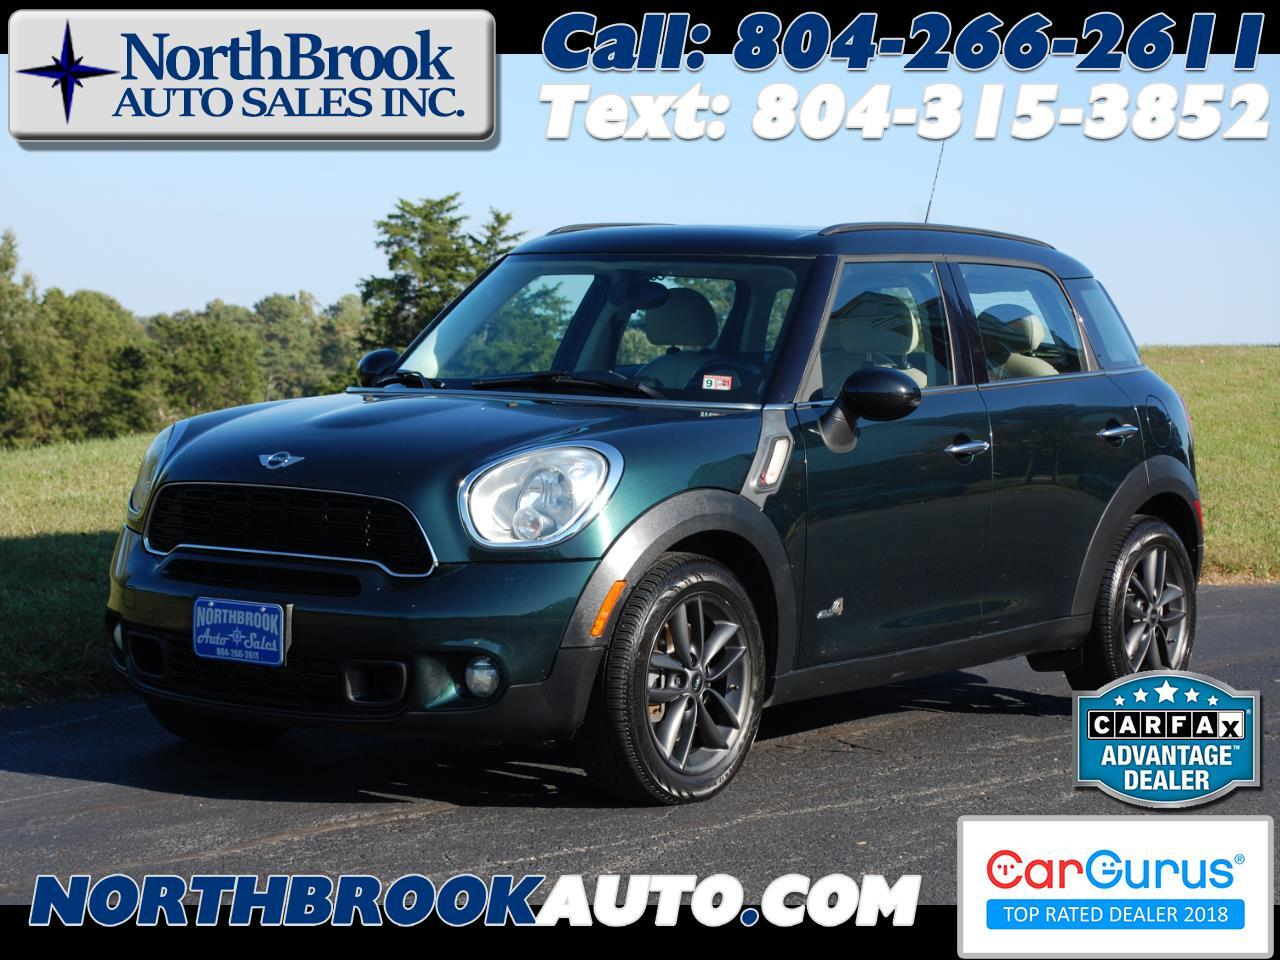 MINI Cooper Countryman AWD 4dr S ALL4 2012